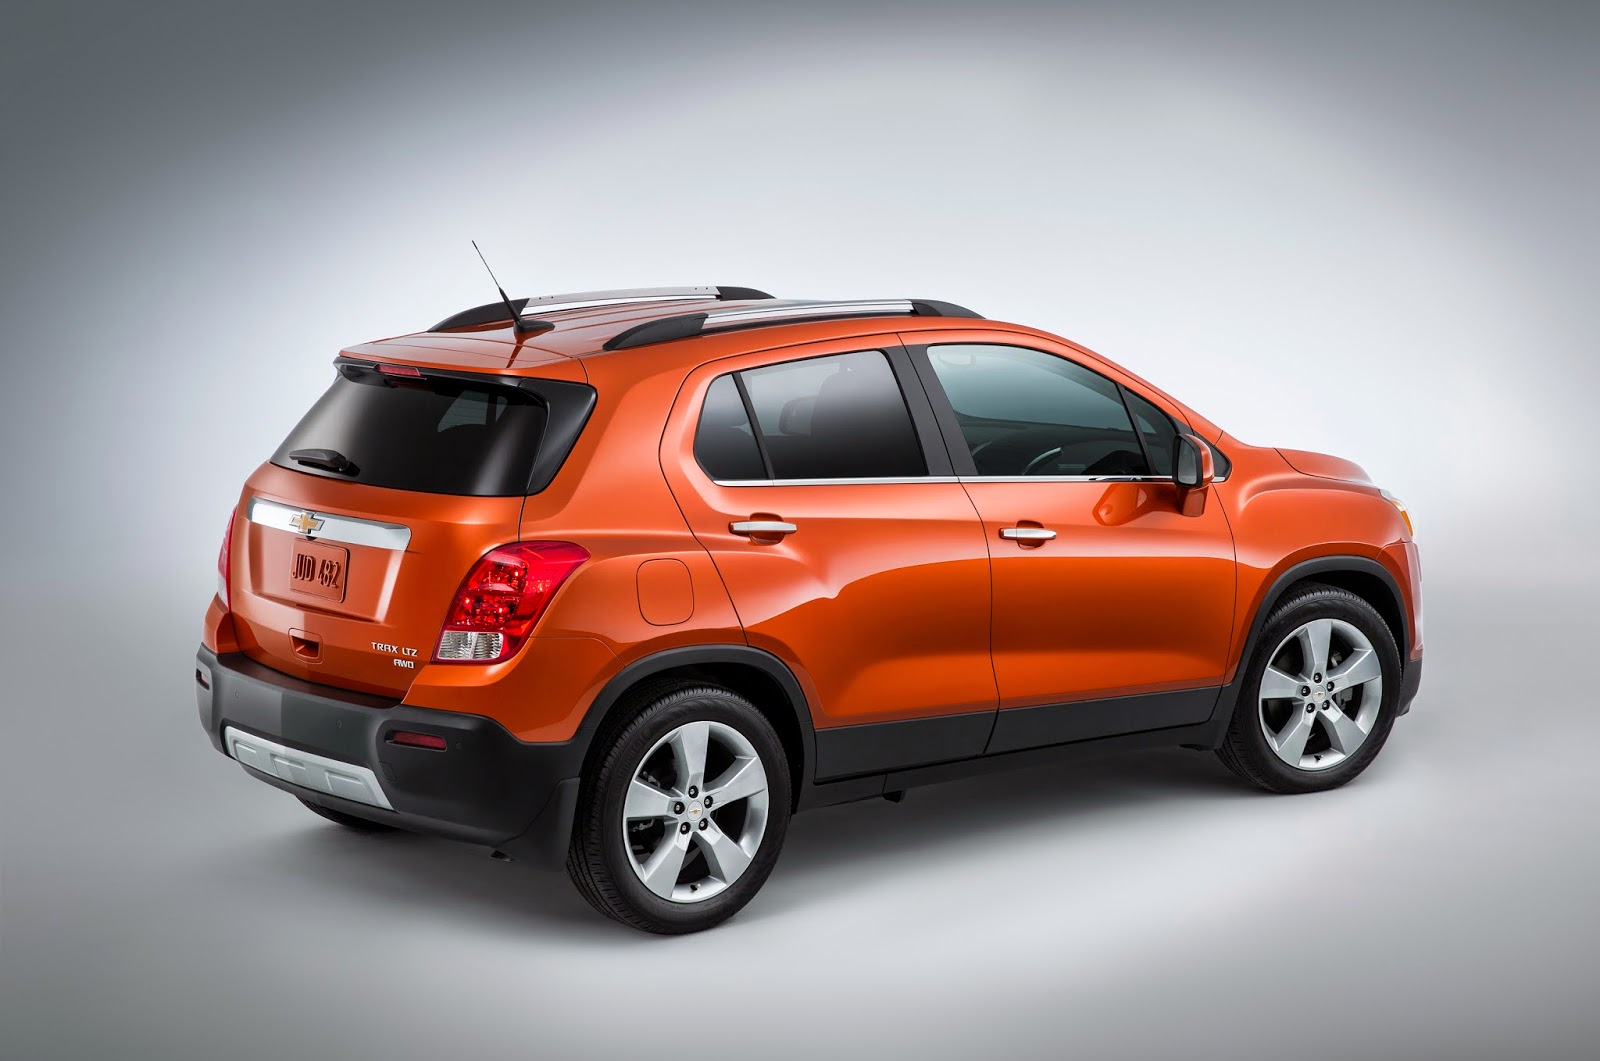 Richard Chevy - Straight to the News: 2015 Chevrolet Trax Small SUV Announced